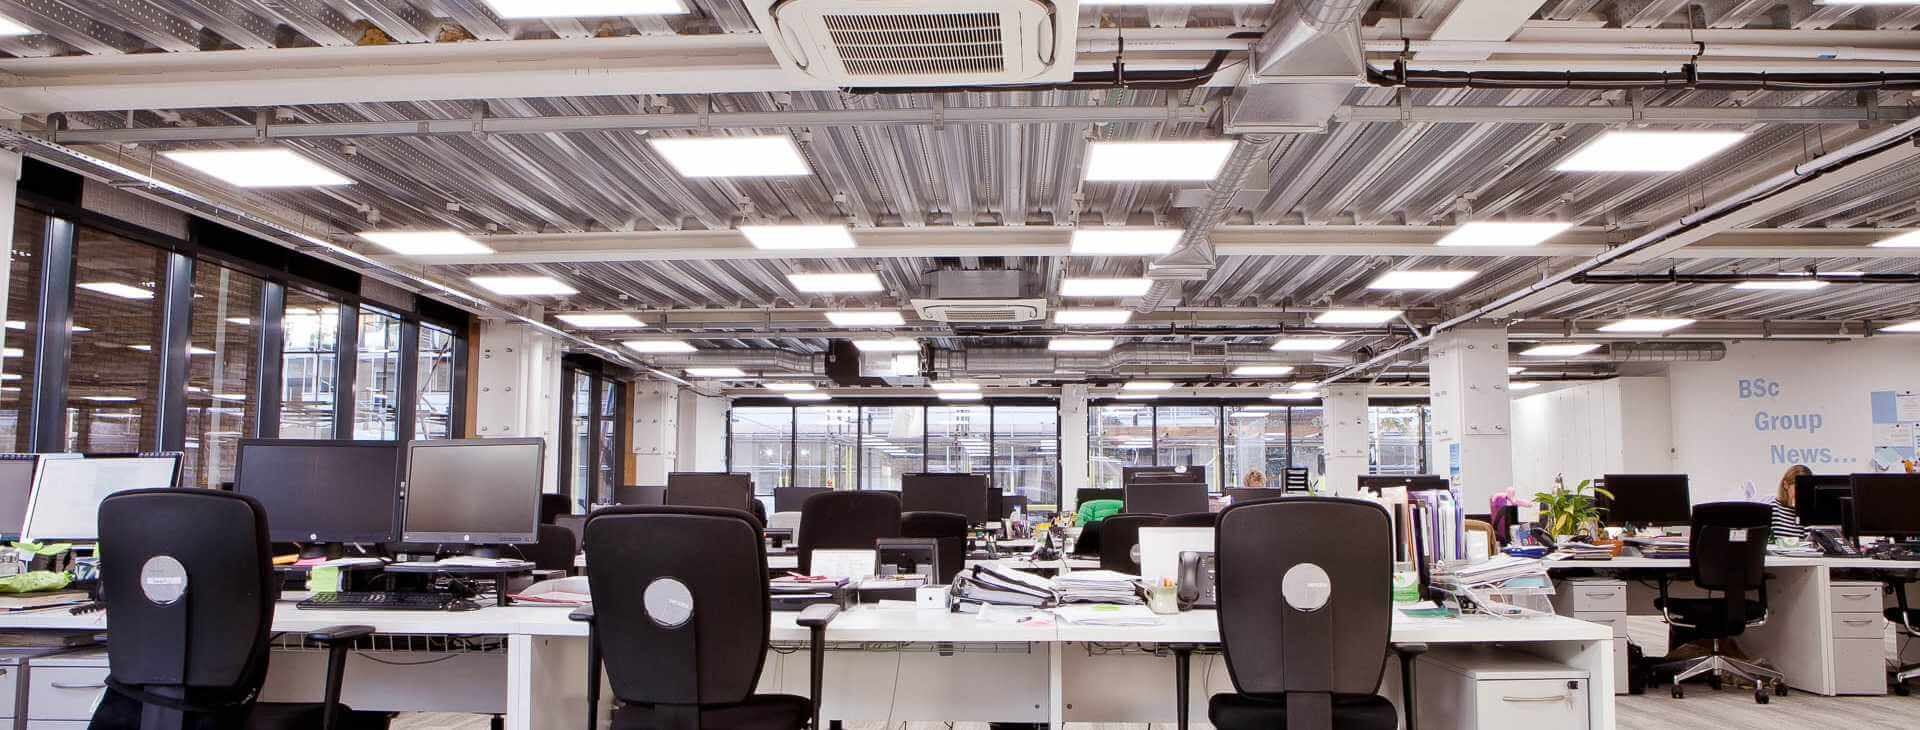 commercial-air-conditioning-london (10)